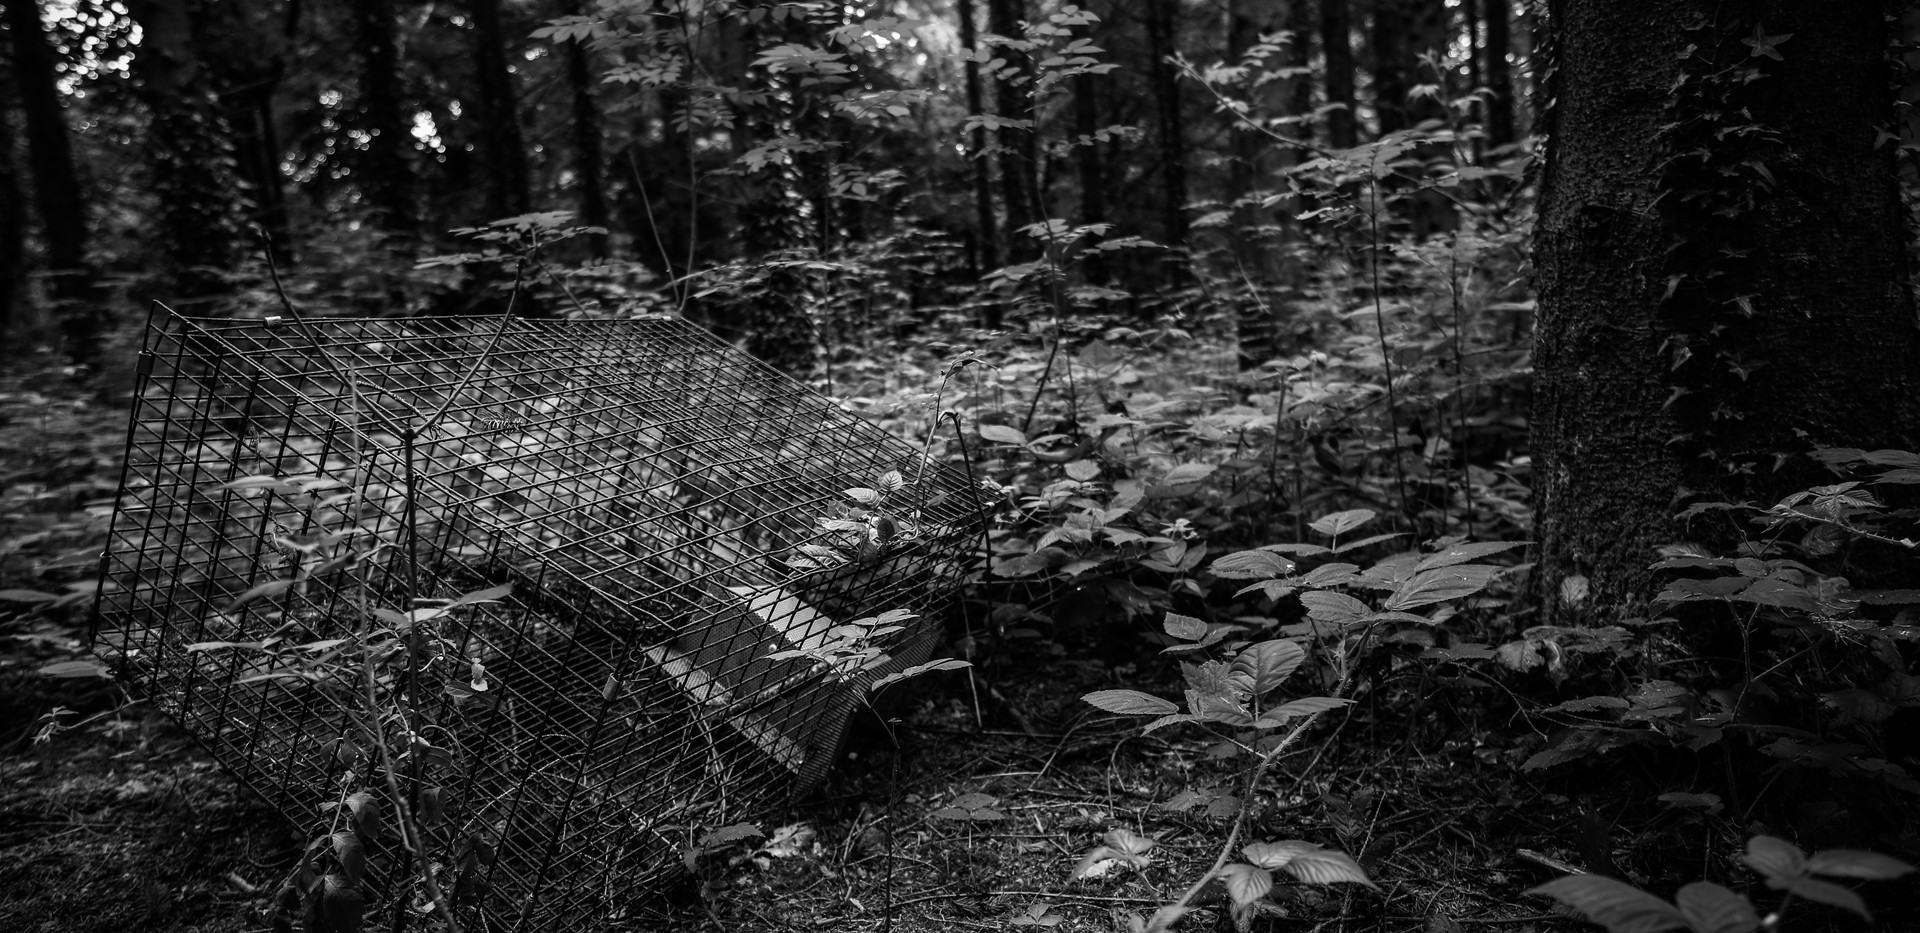 Irelandforest3bw.jpg